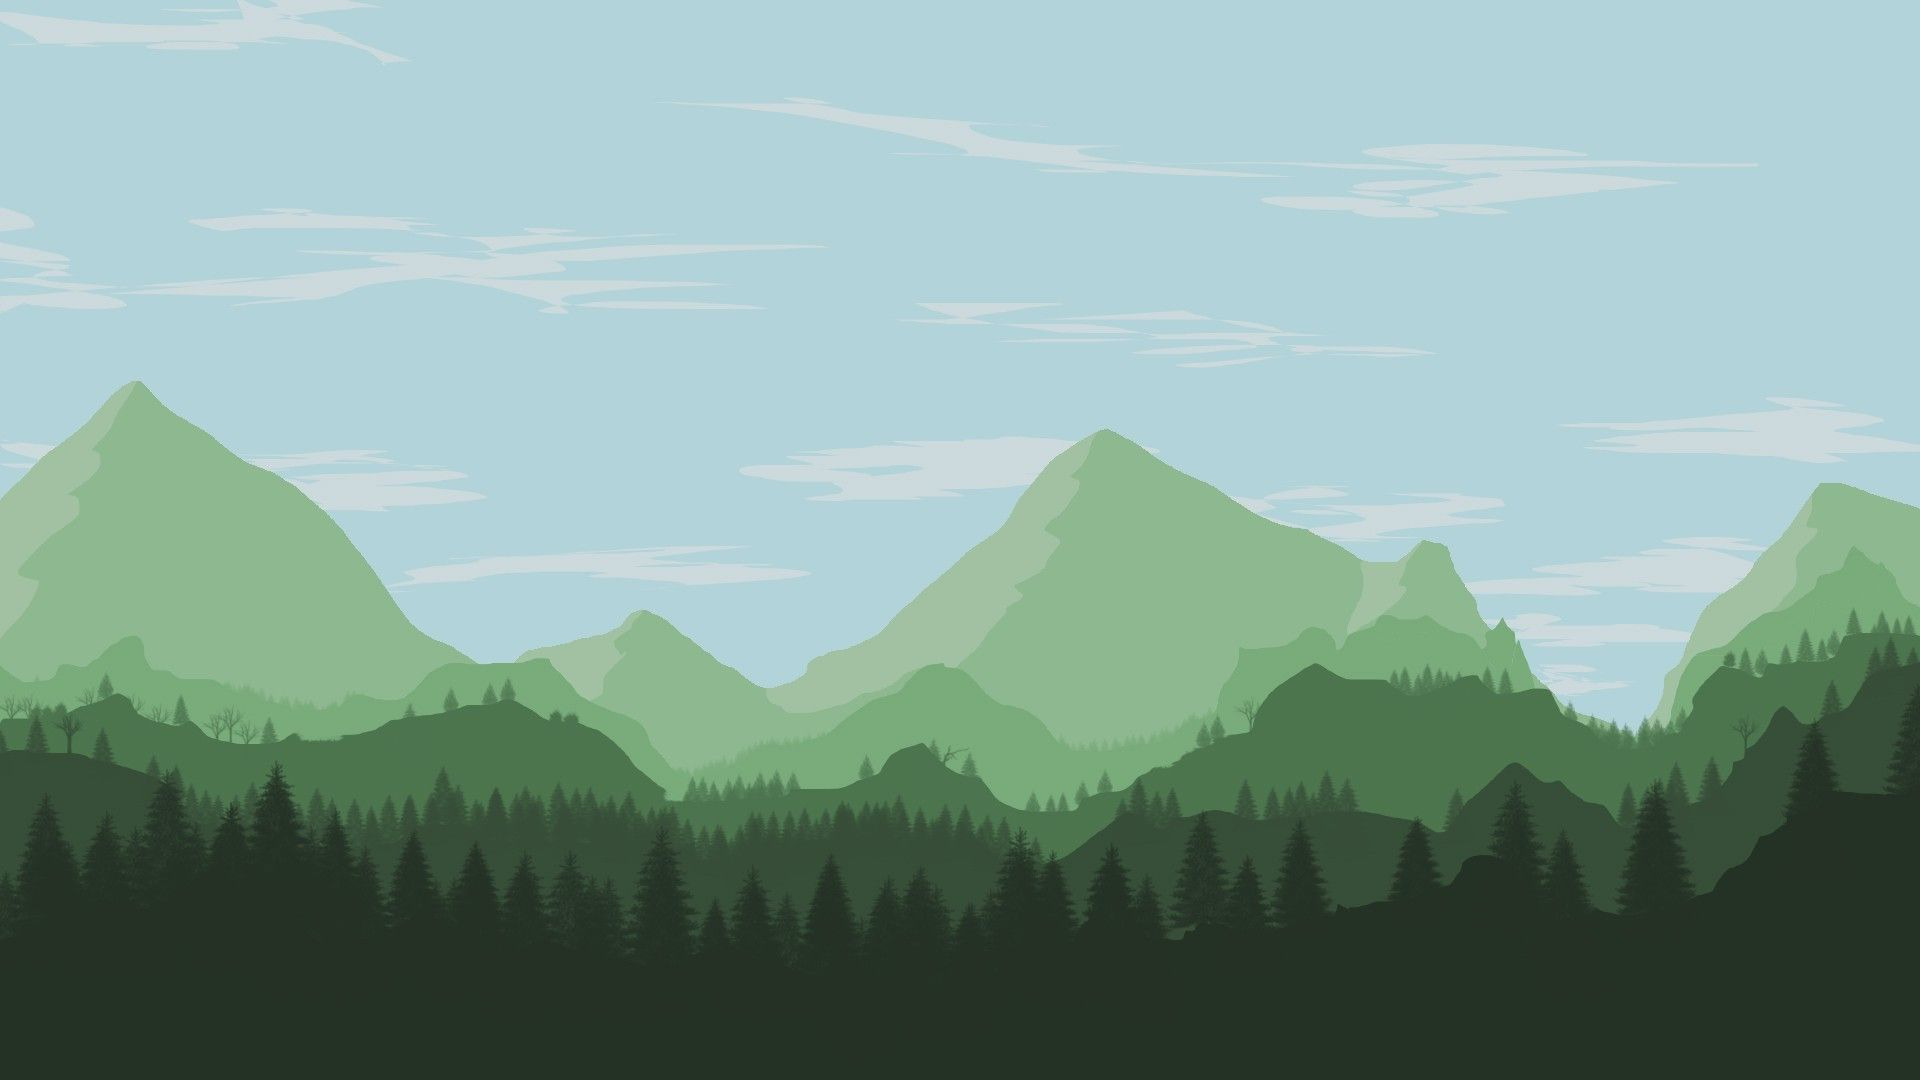 Free Mountain Vector background picture hd